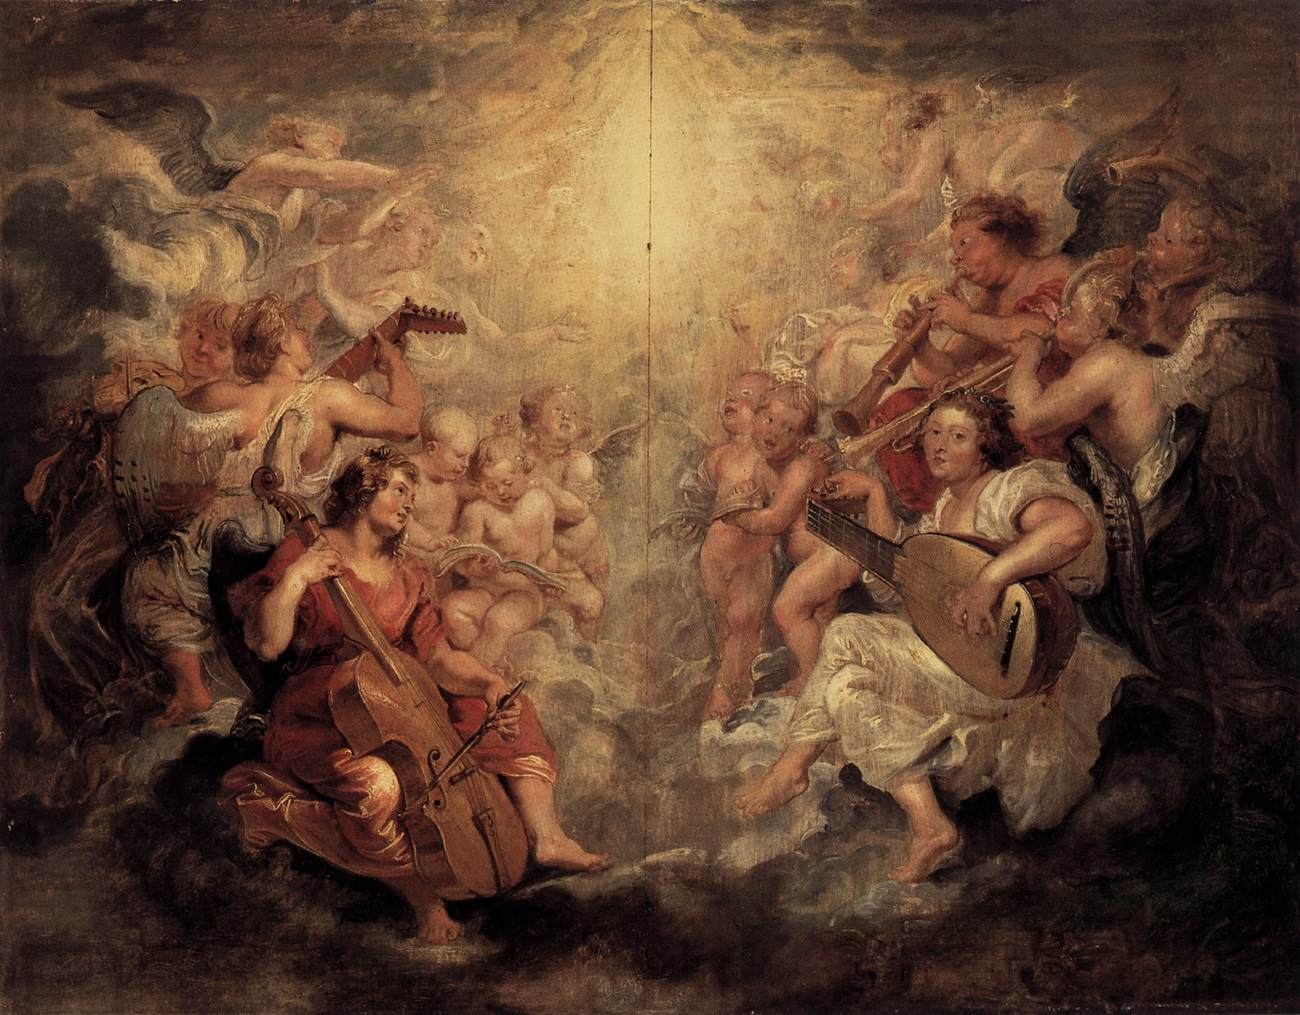 Music Making Angels by Peter Paul Rubens, Gemäldegalerie, Berlin State Museums